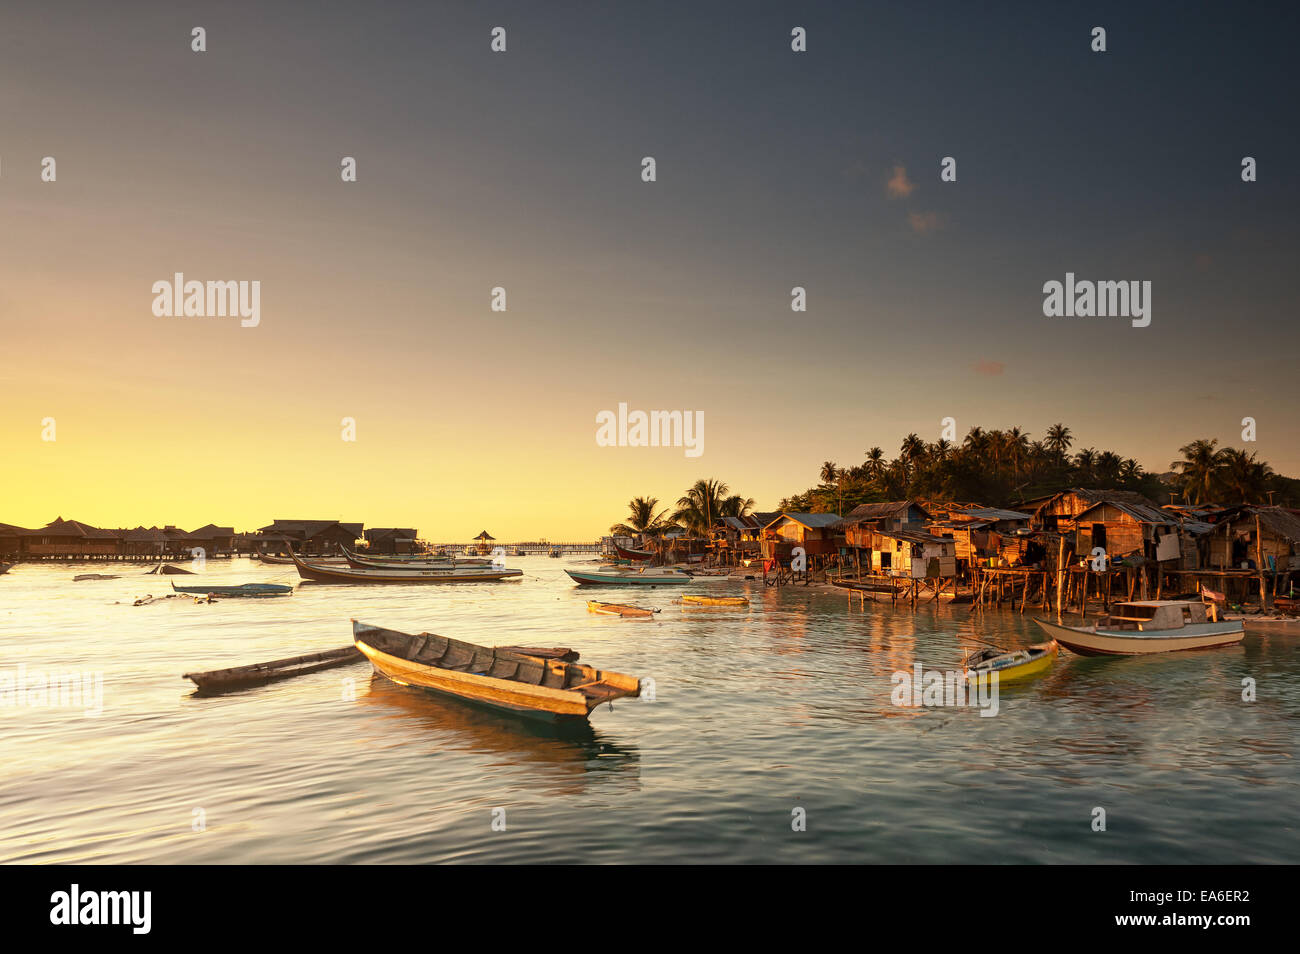 Malaysia, Sabah, Small boats and Sea Gypsy huts at sunrise - Stock Image